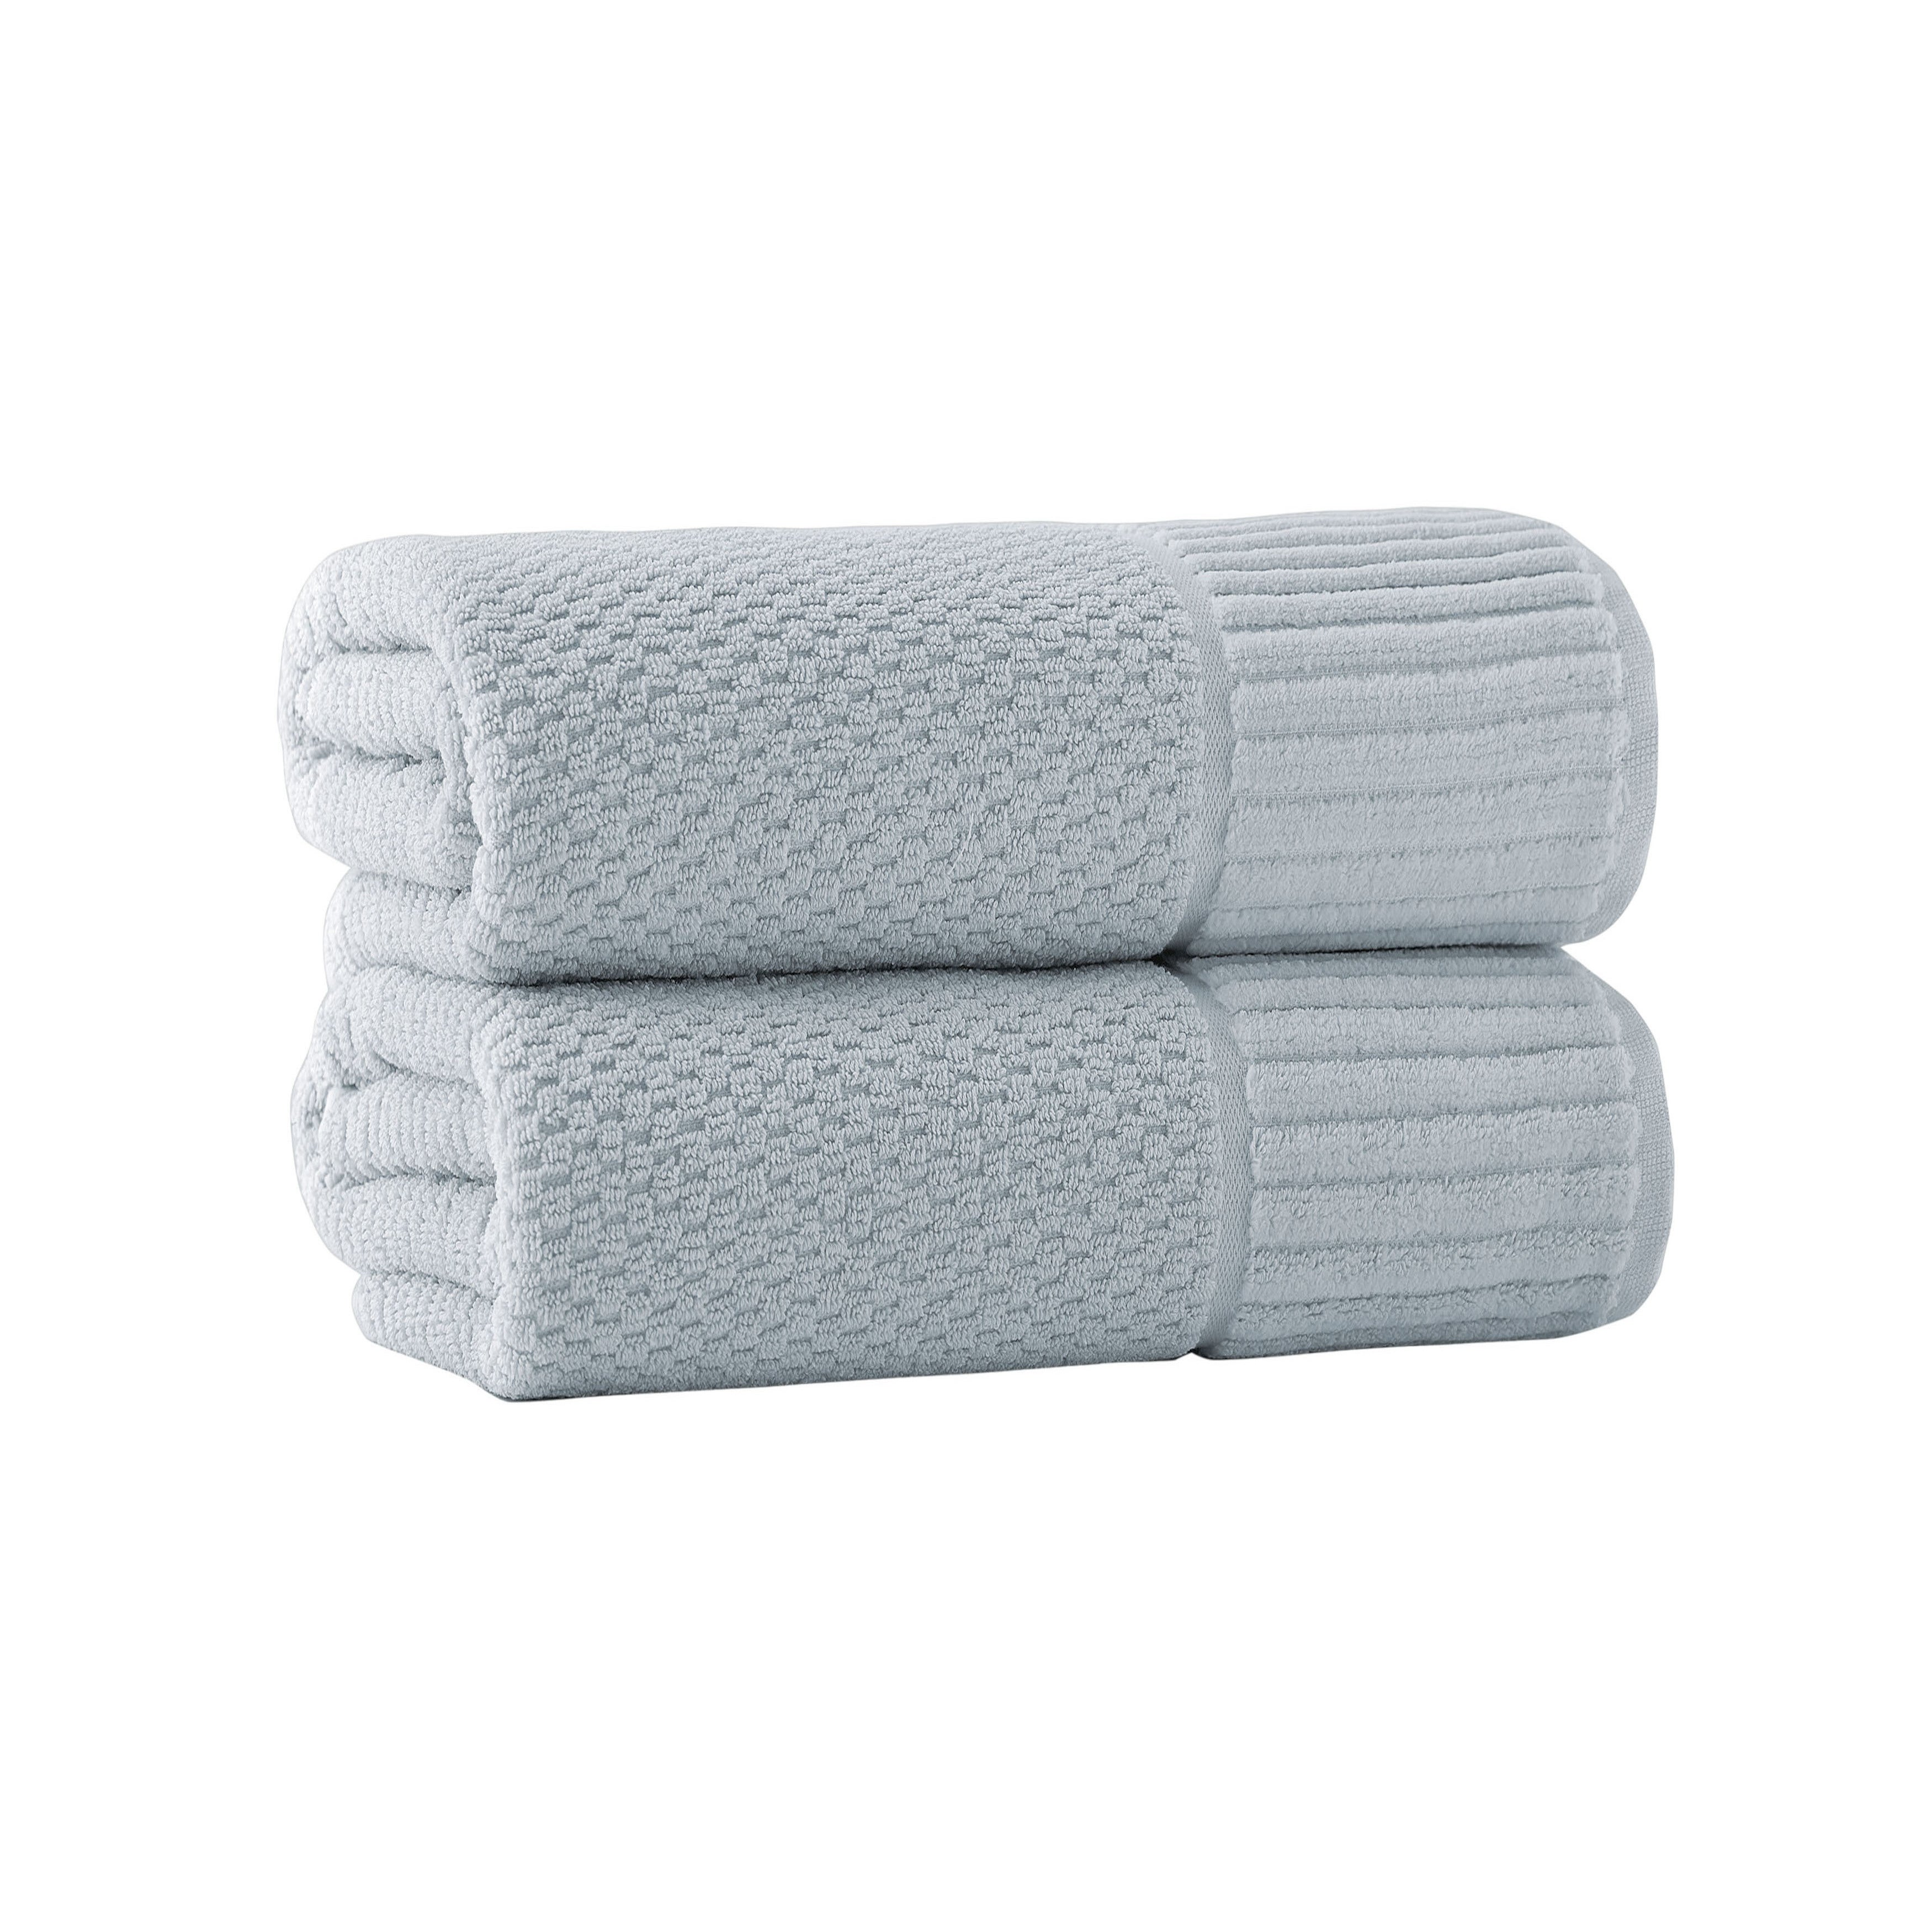 thumbnail 30 - The-Gray-Barn-Scharbauer-Bath-Towels-Set-of-2